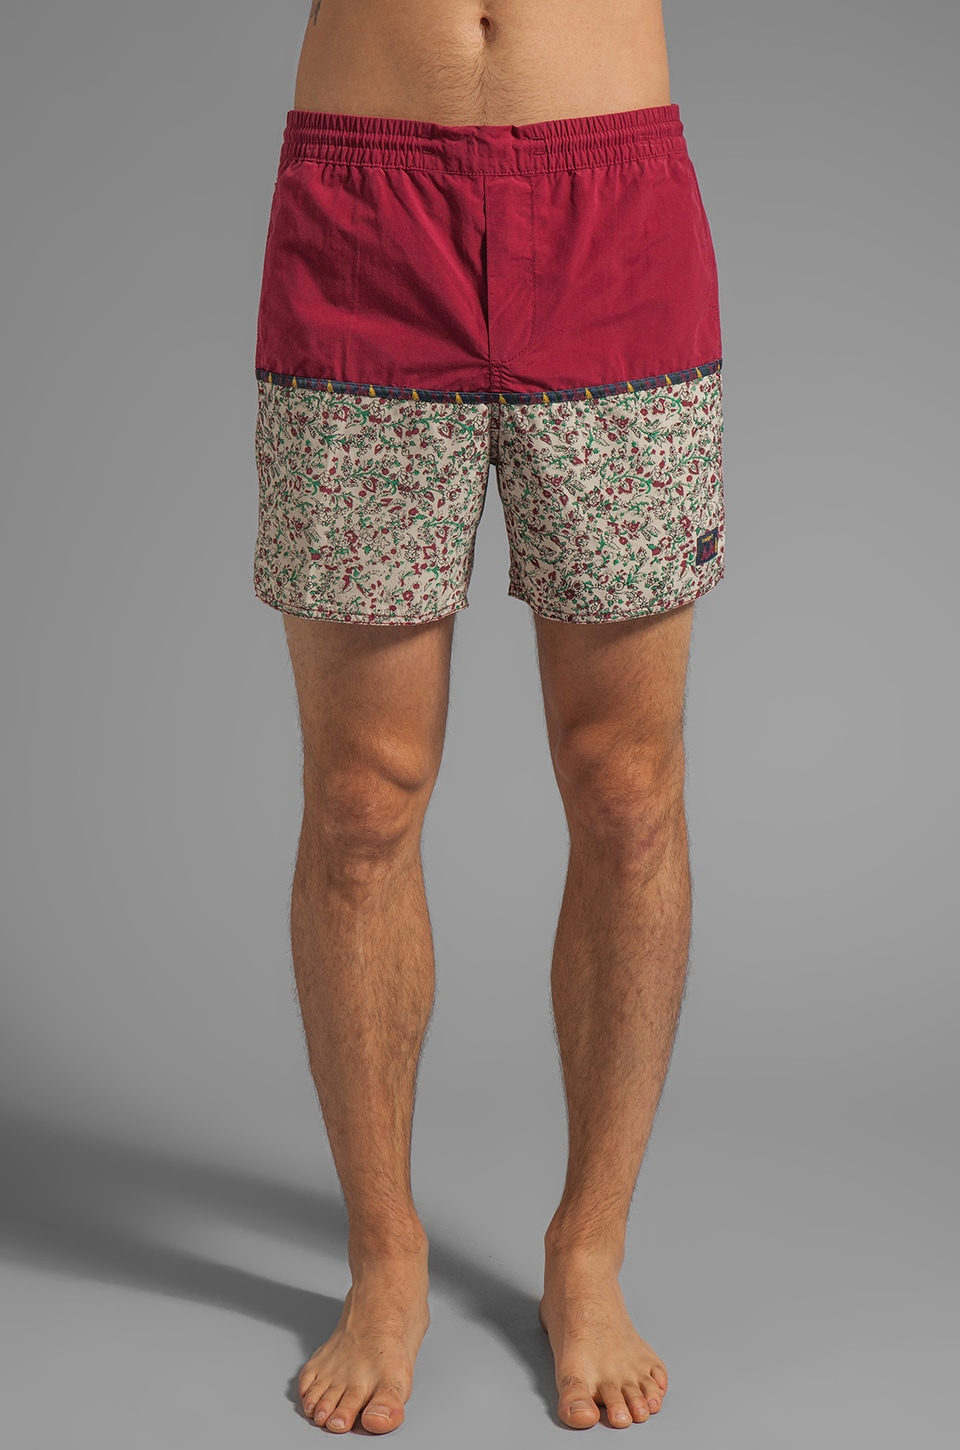 Insight Church Mid Warren Smith Signature Series Boardshort in Sangria